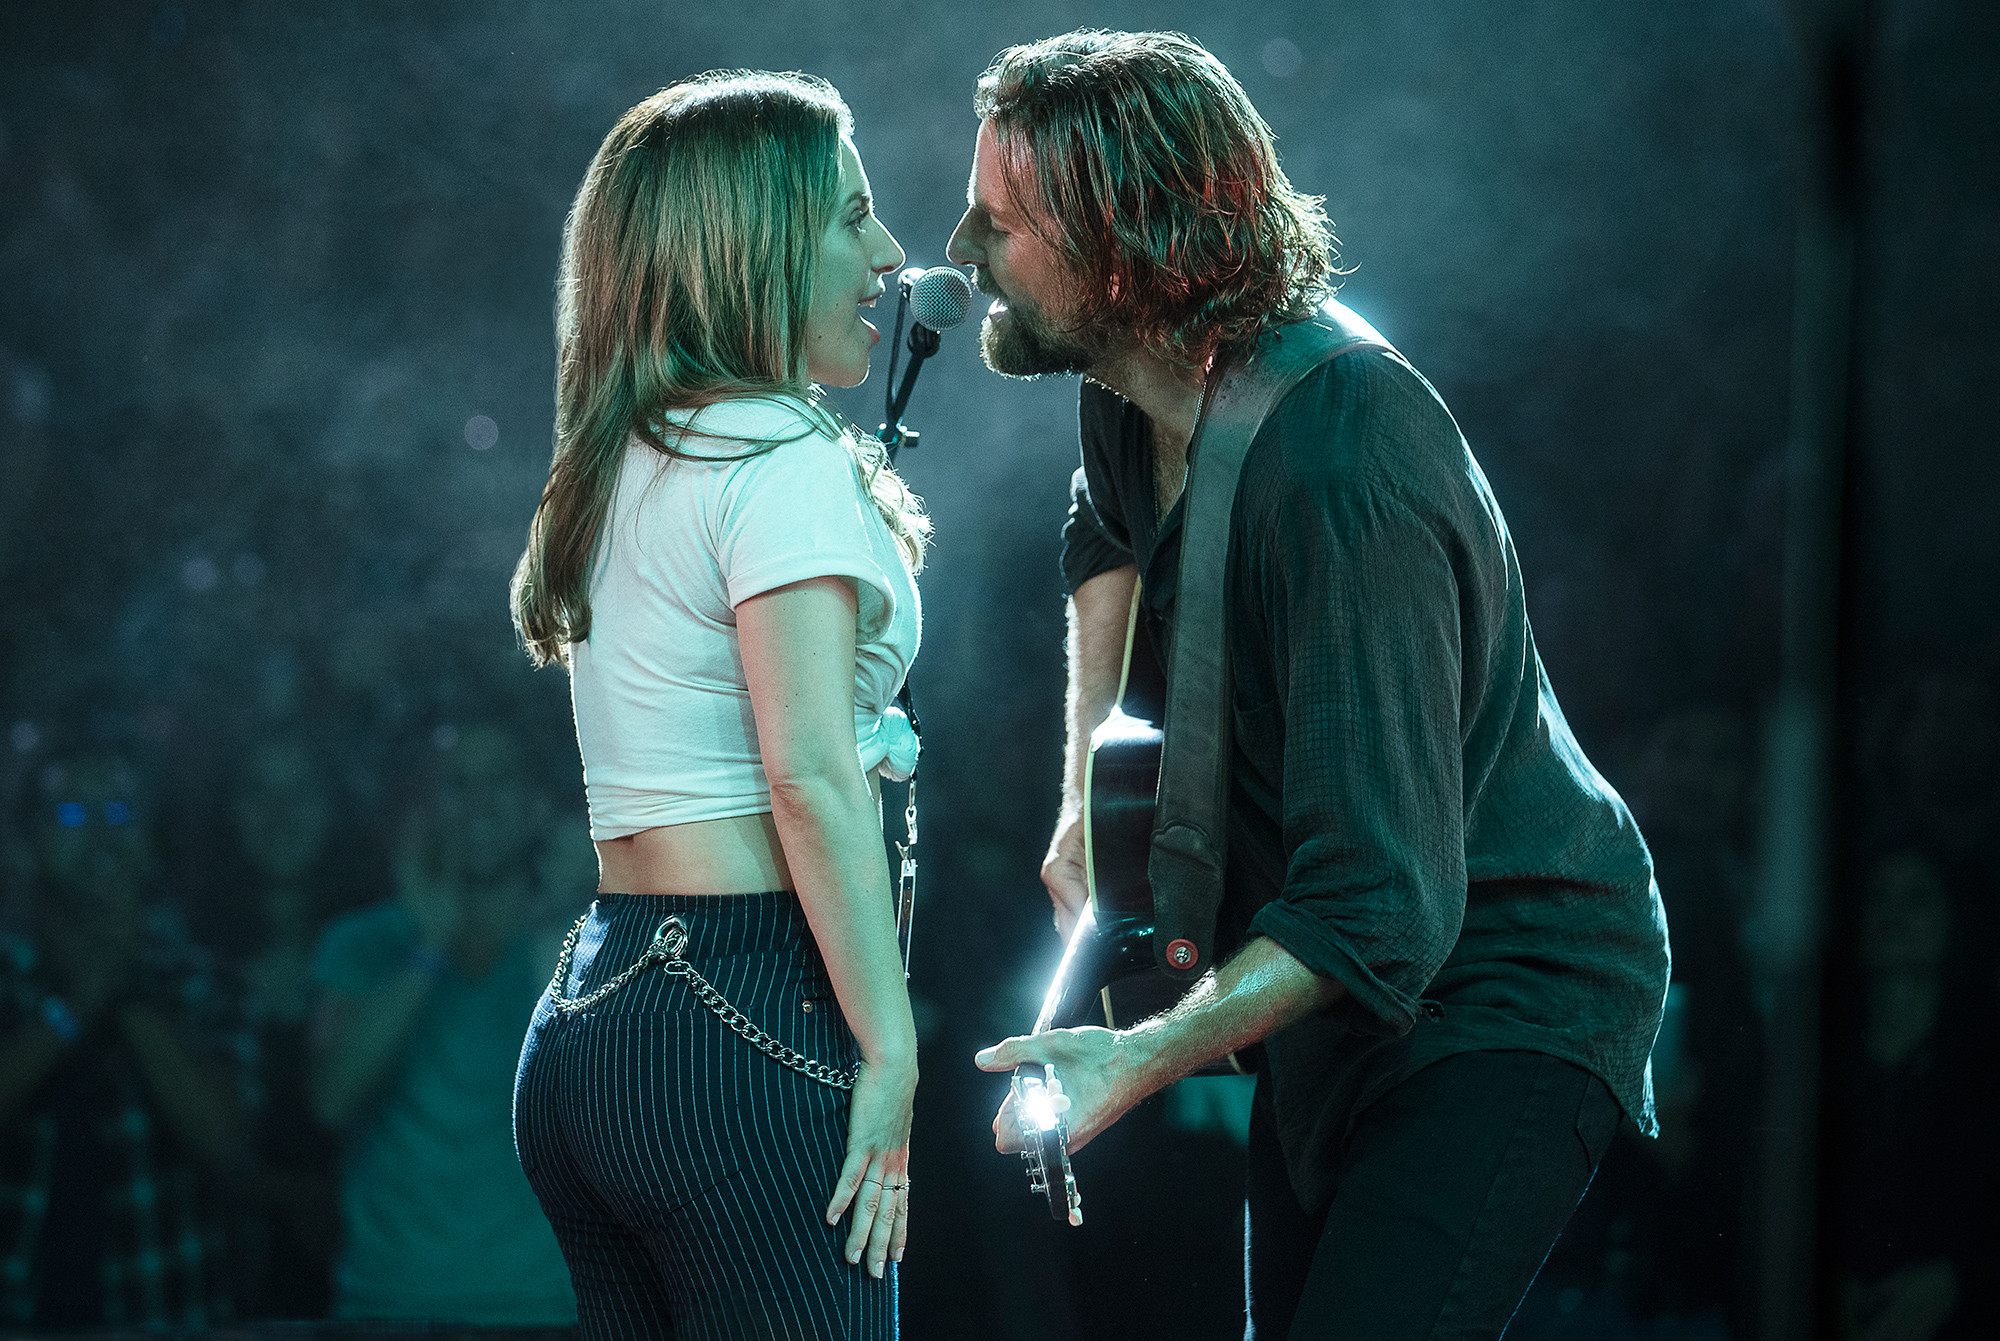 bradley-cooper-lady-gaga-star-is-born-soundtrack